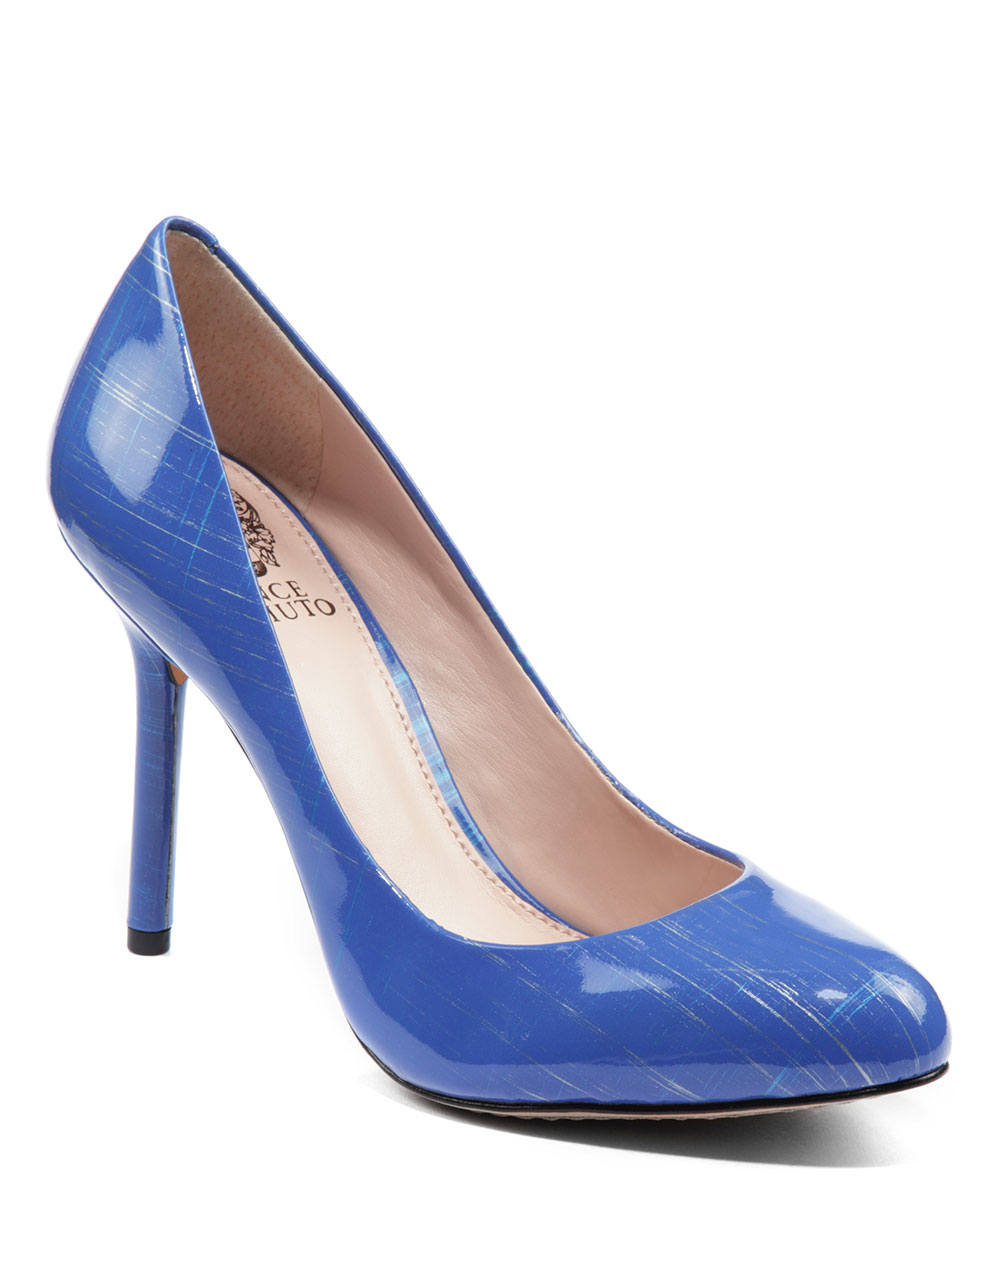 Vince Camuto Caelyn Patent Leather Pumps In Blue Blue 01